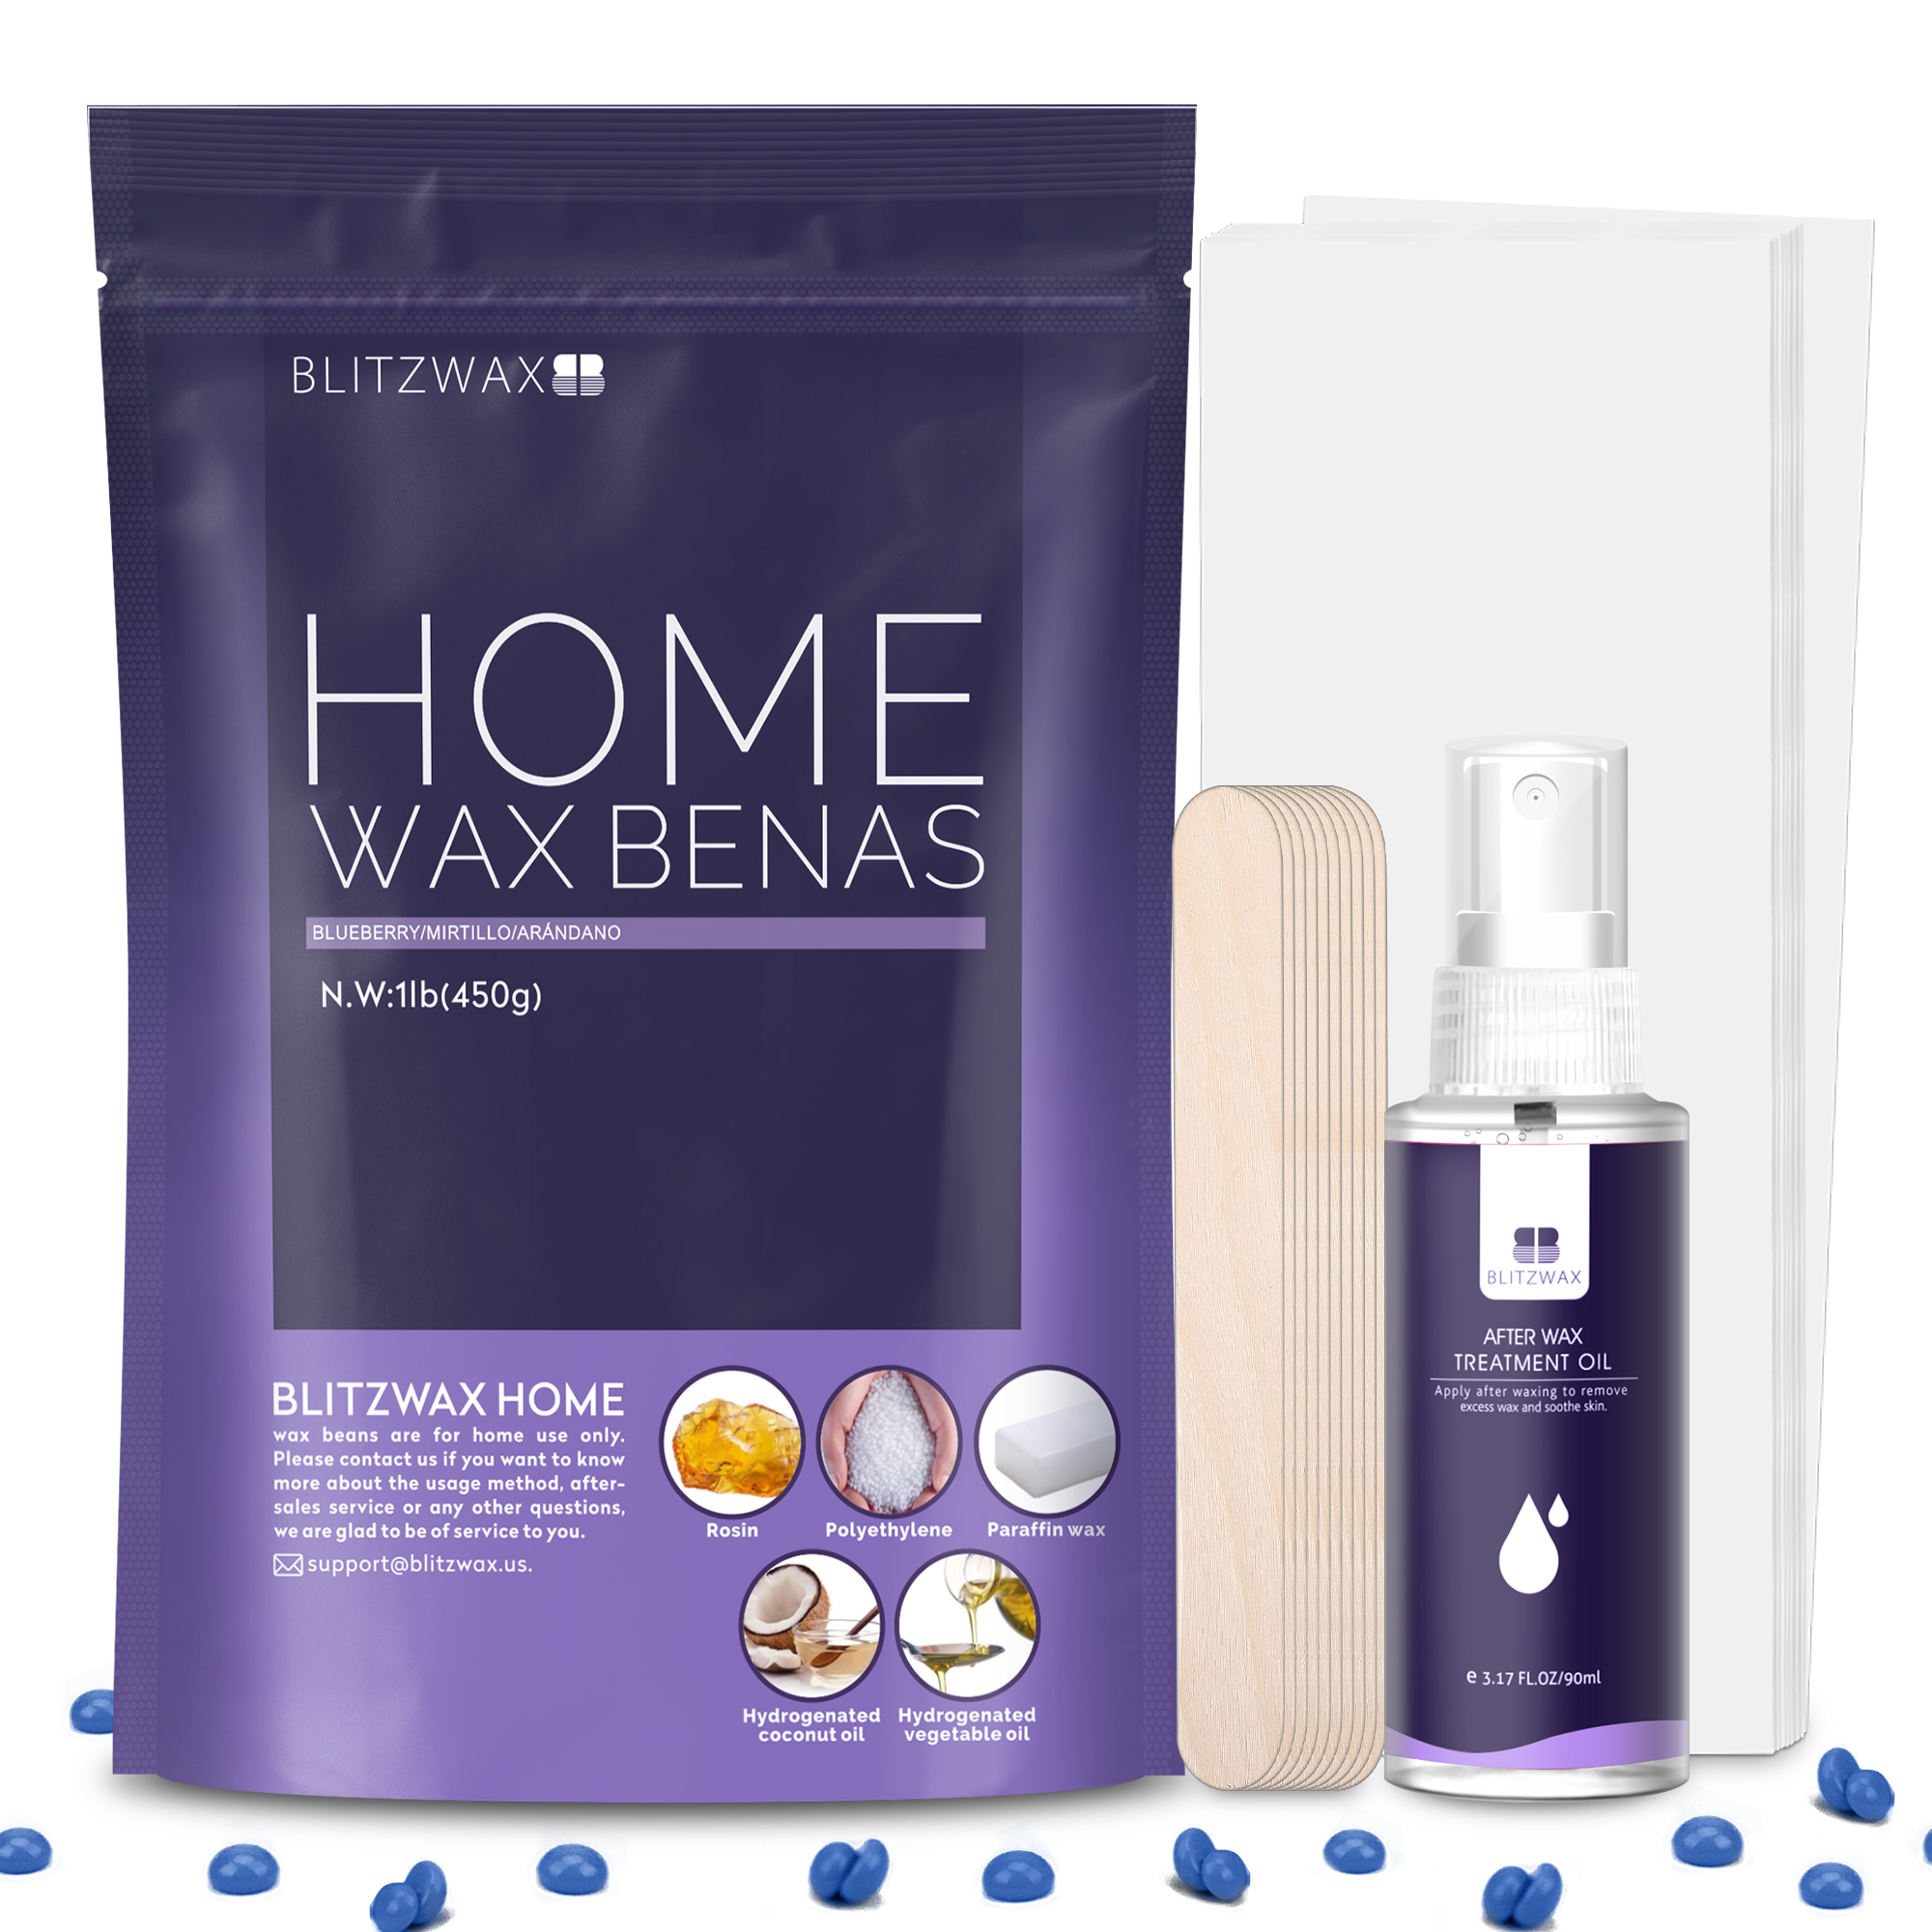 Blitzwax Hard Wax Beads Kit Coarse Hair Removal Wax With Wax